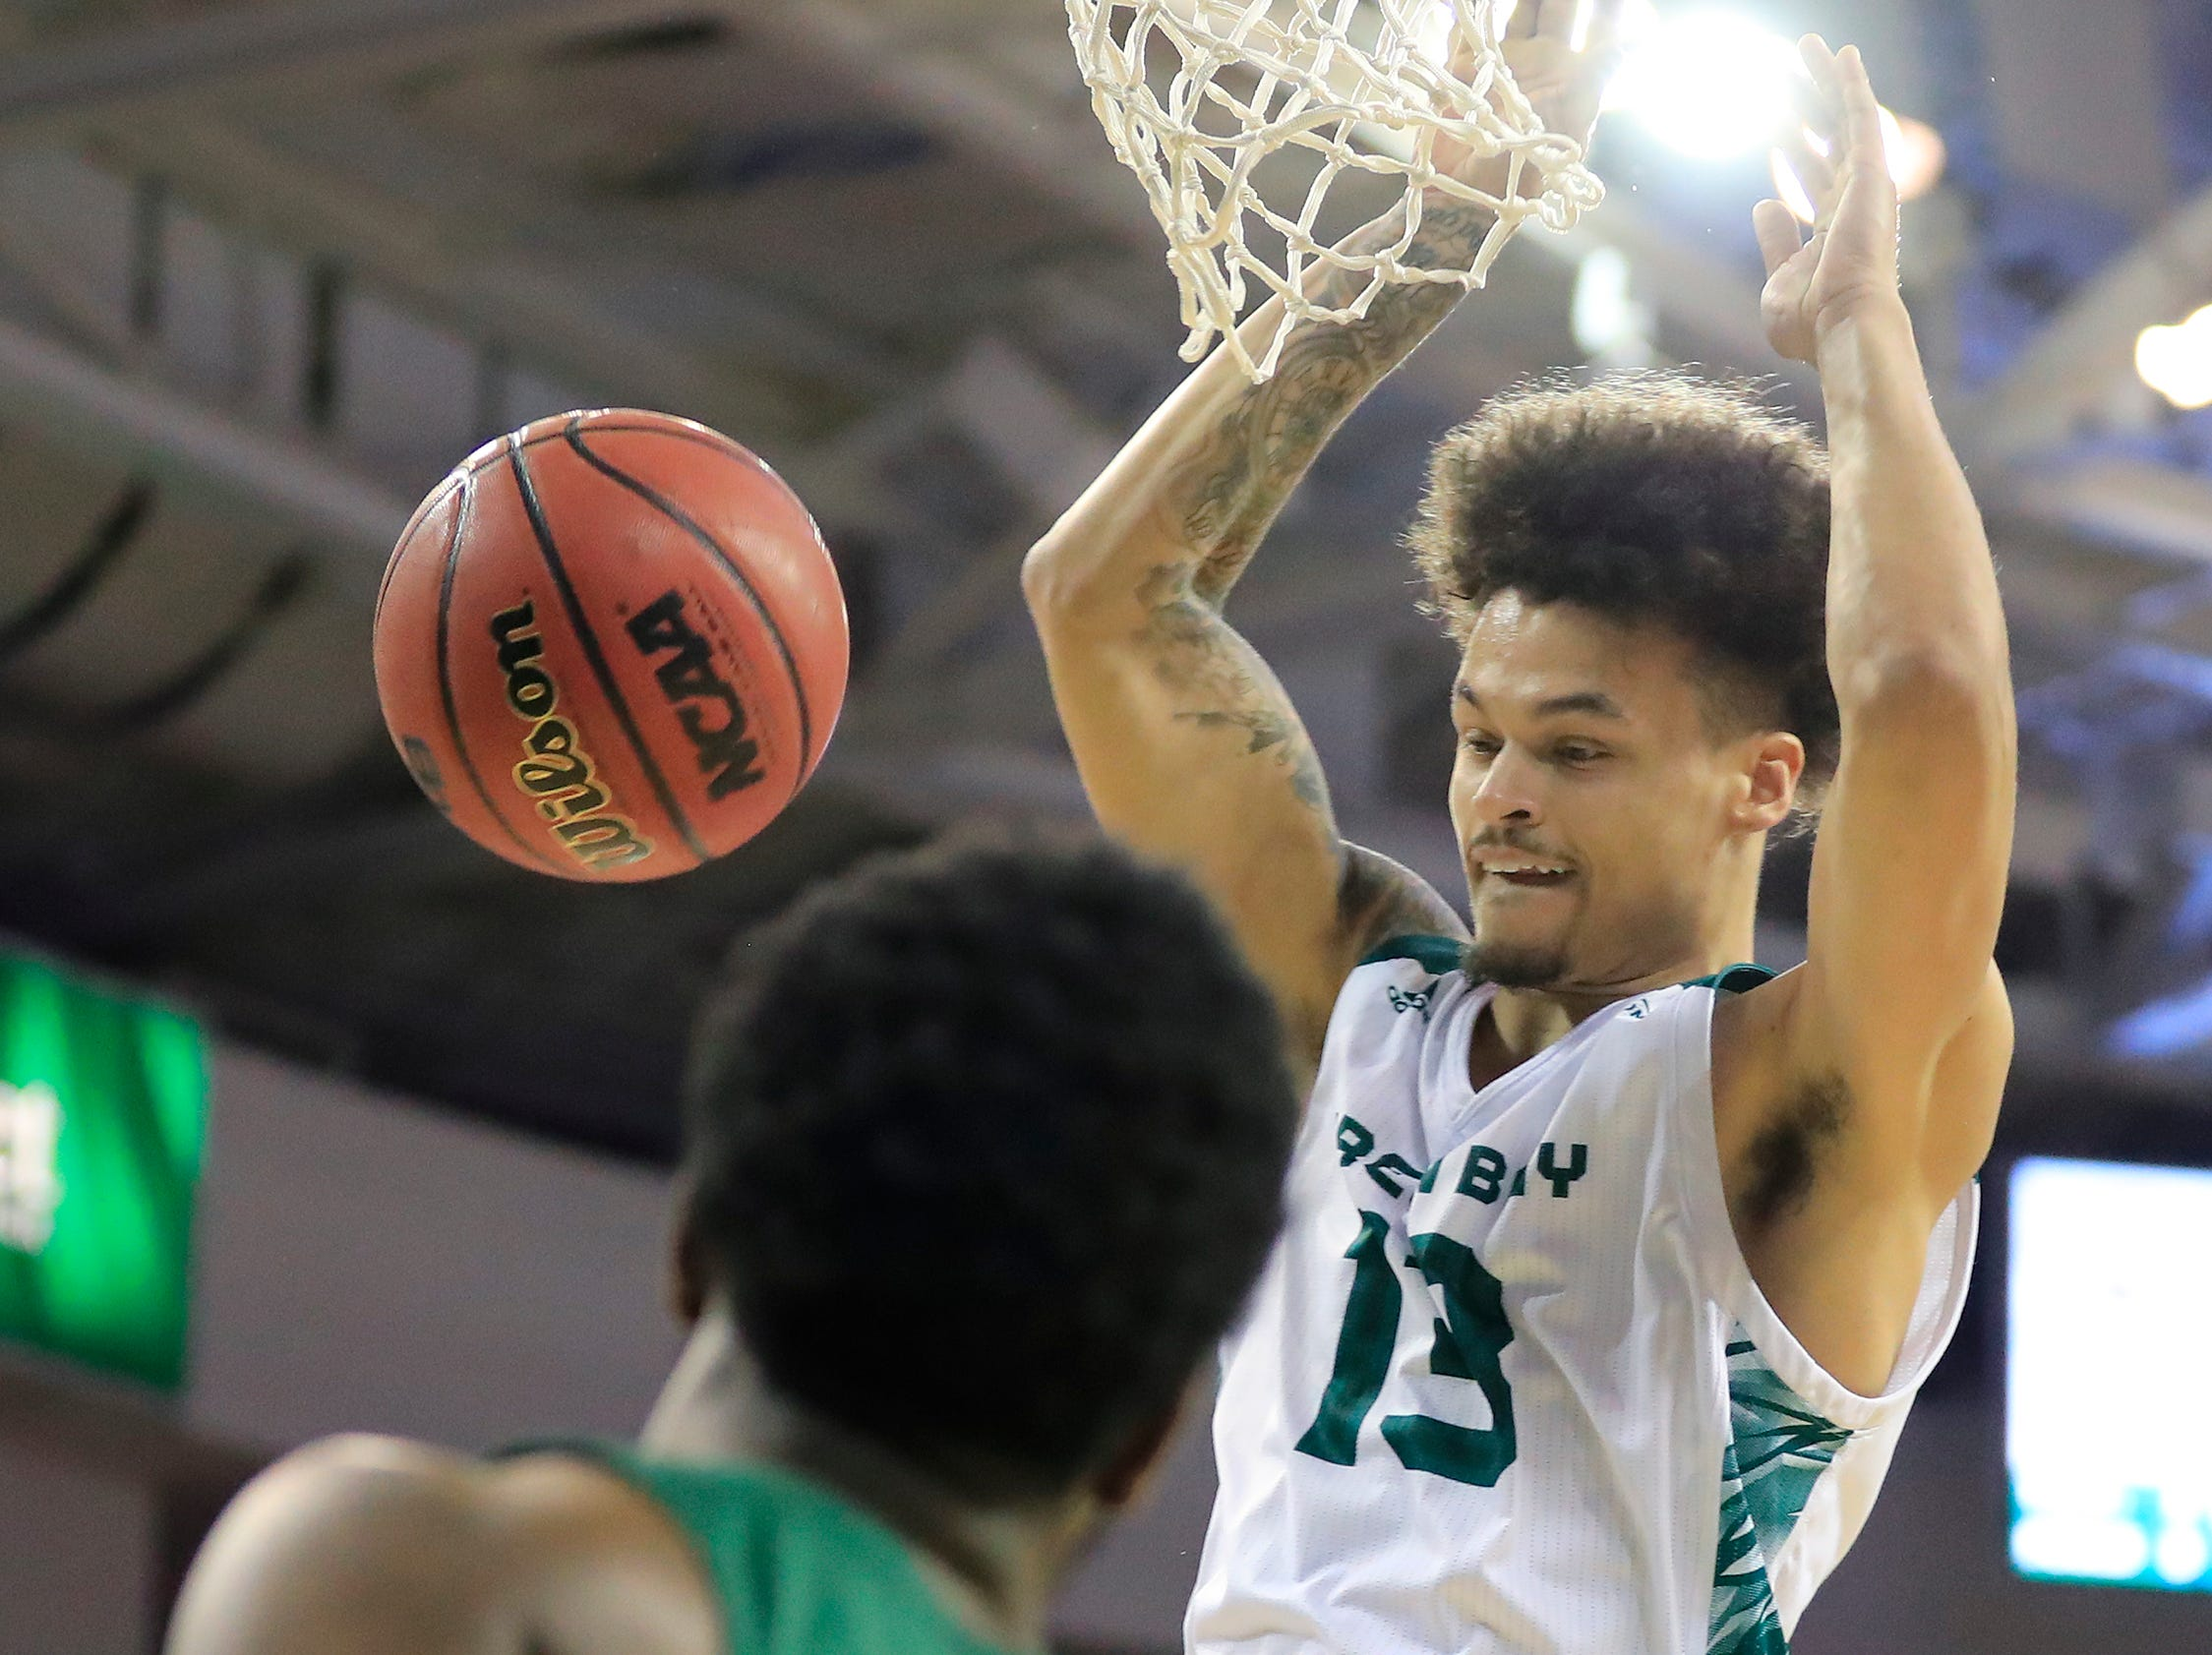 Green Bay Phoenix guard Trevian Bell (13) dunks against the Cleveland State Vikings in a Horizon League basketball game at the Resch Center on Saturday, January 5, 2019 in Green Bay, Wis.